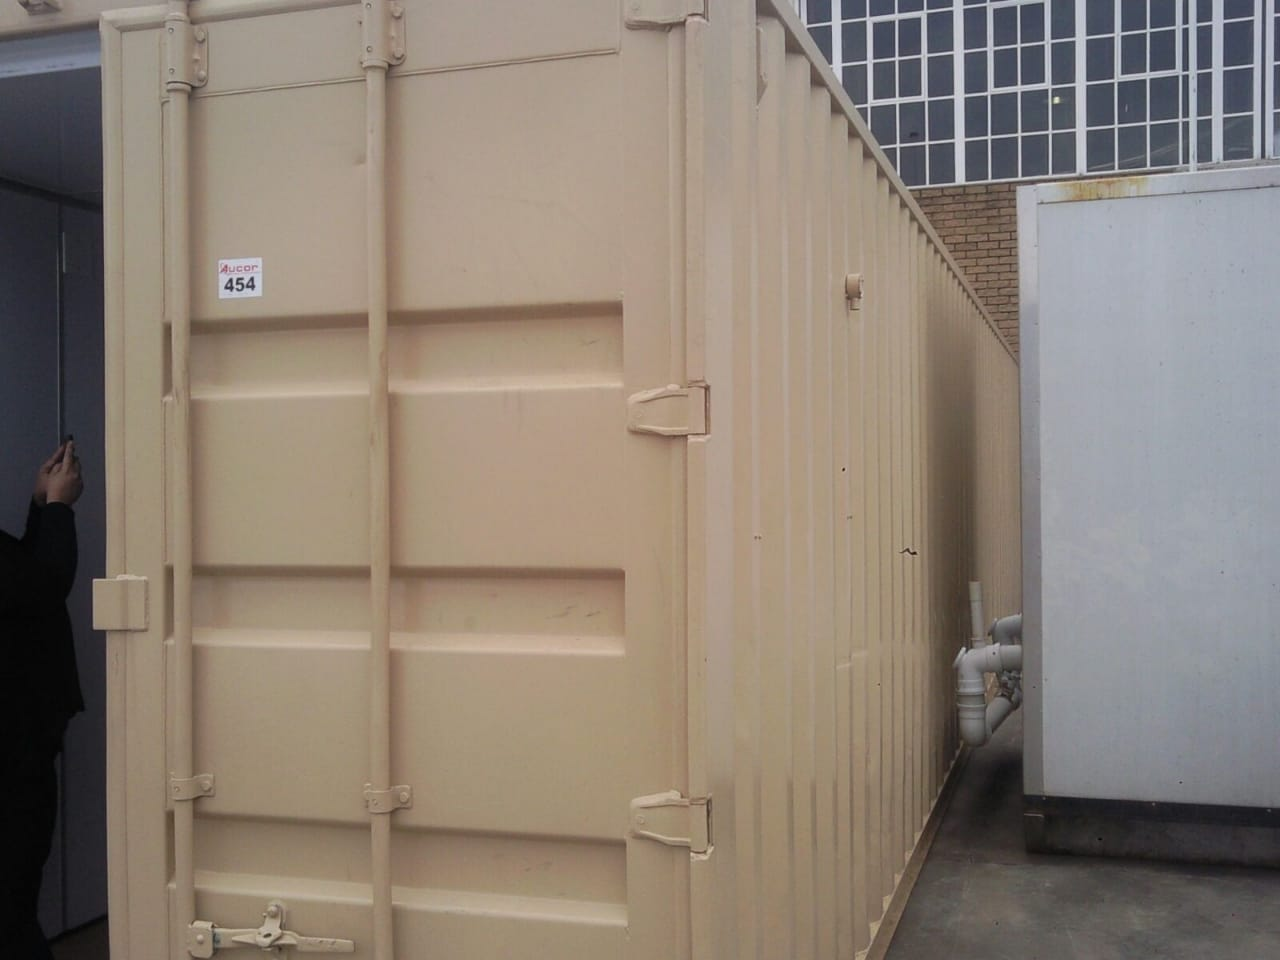 Mobile insulated container with extraction and air conditioning